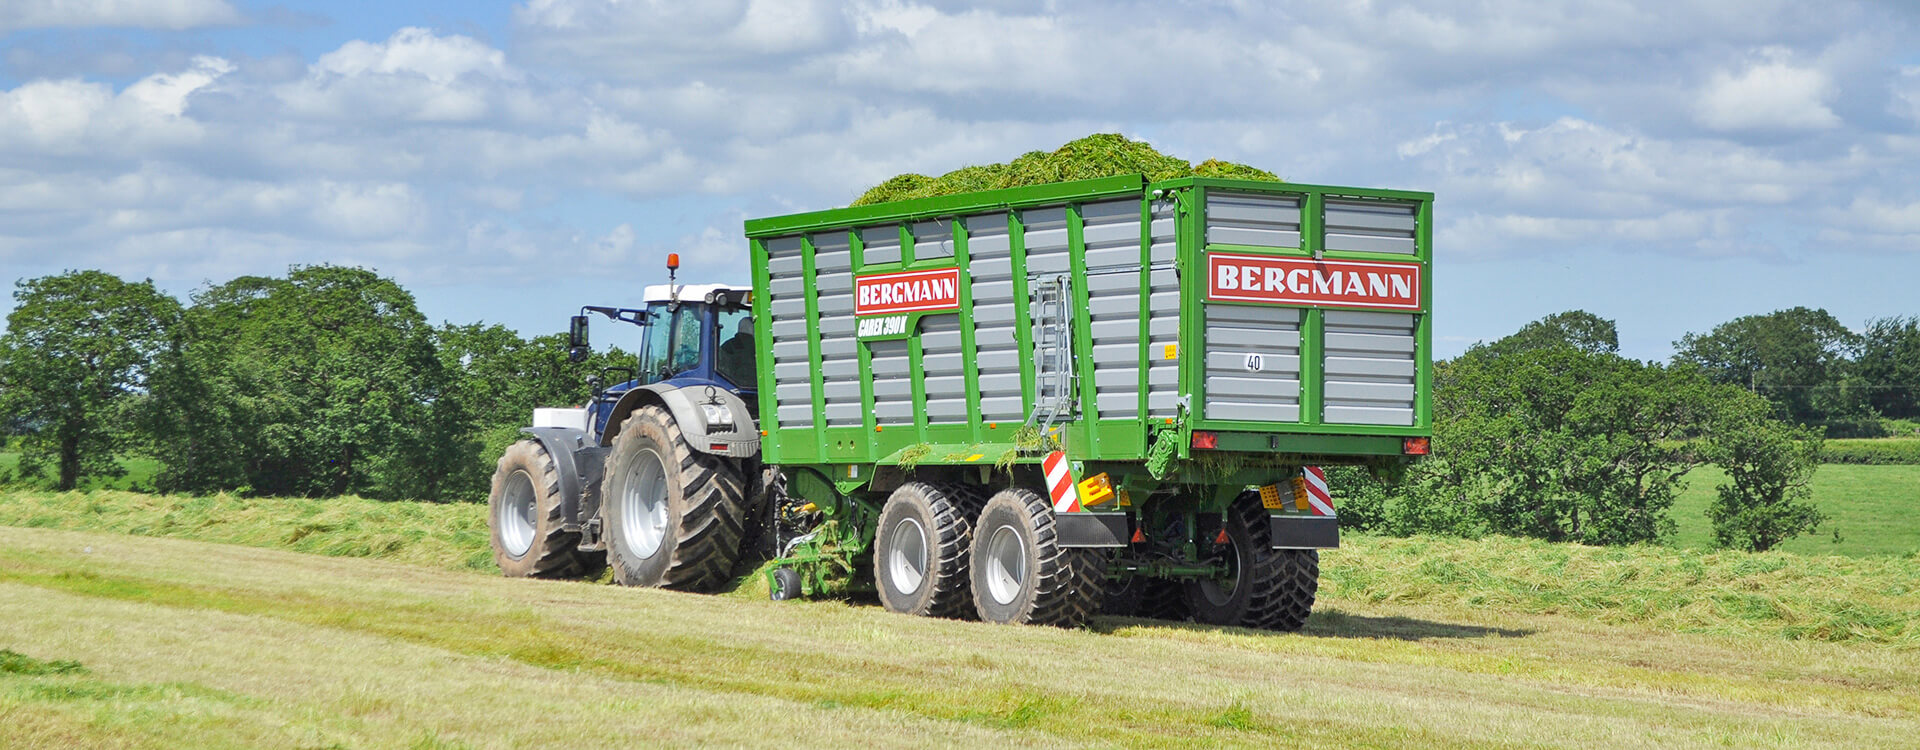 Forage wagon loading grass silage UK